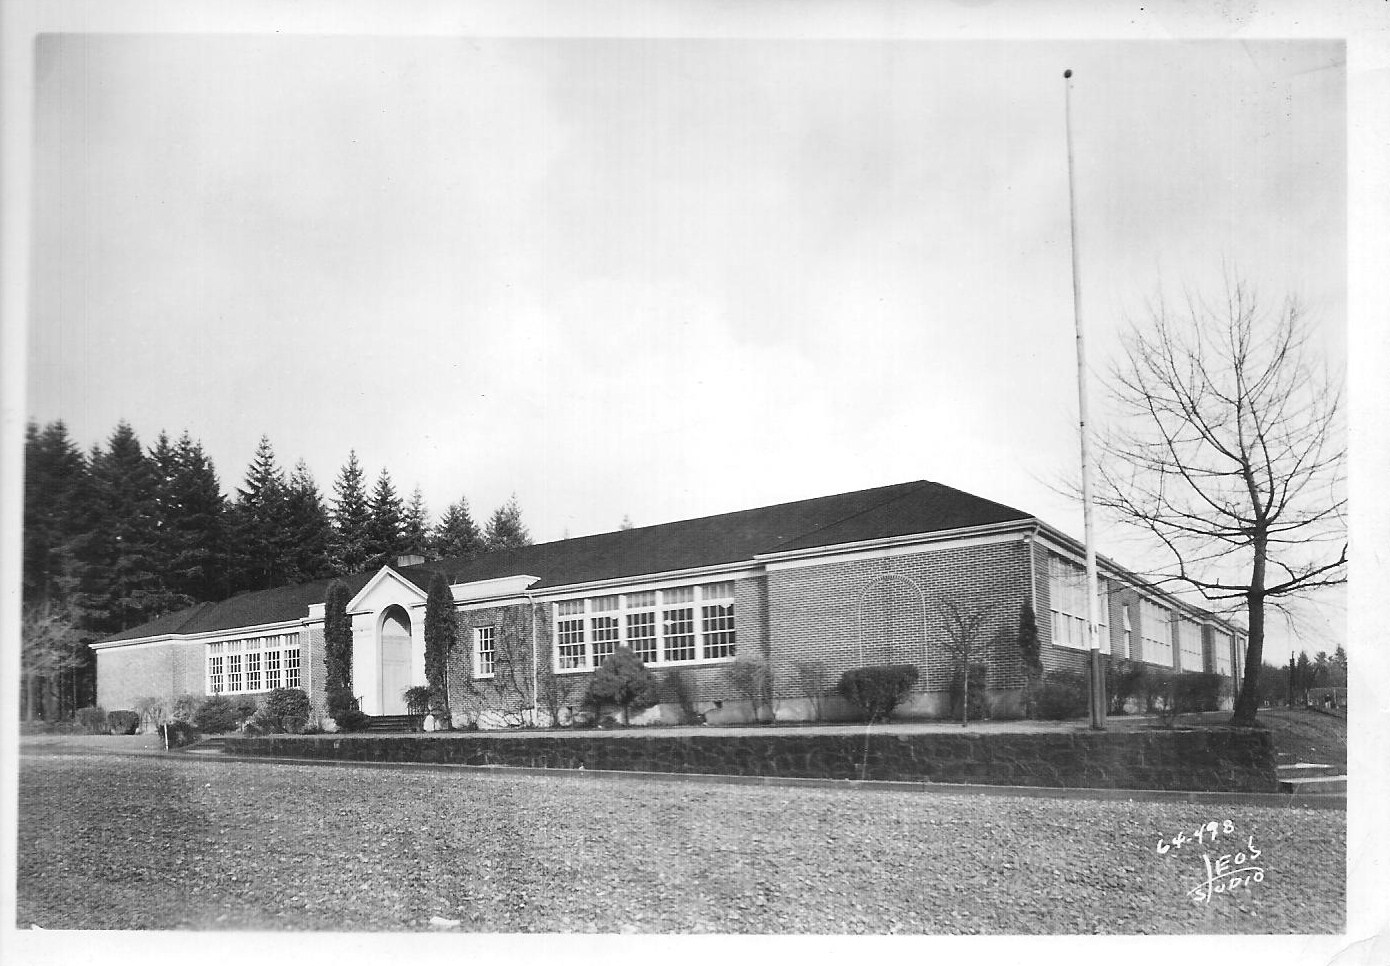 Hathaway School in the 1940s